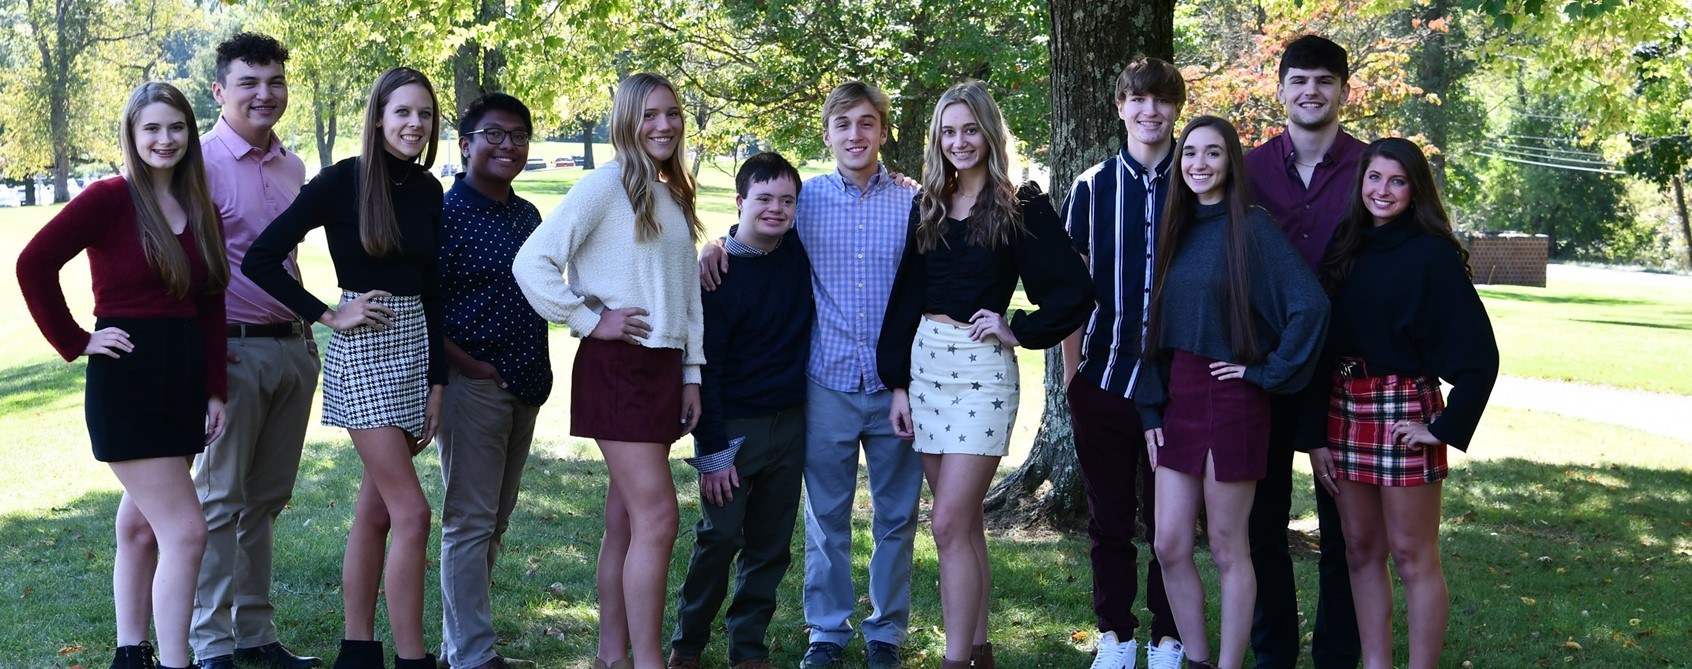 2021 Deer Lakes Homecoming Events